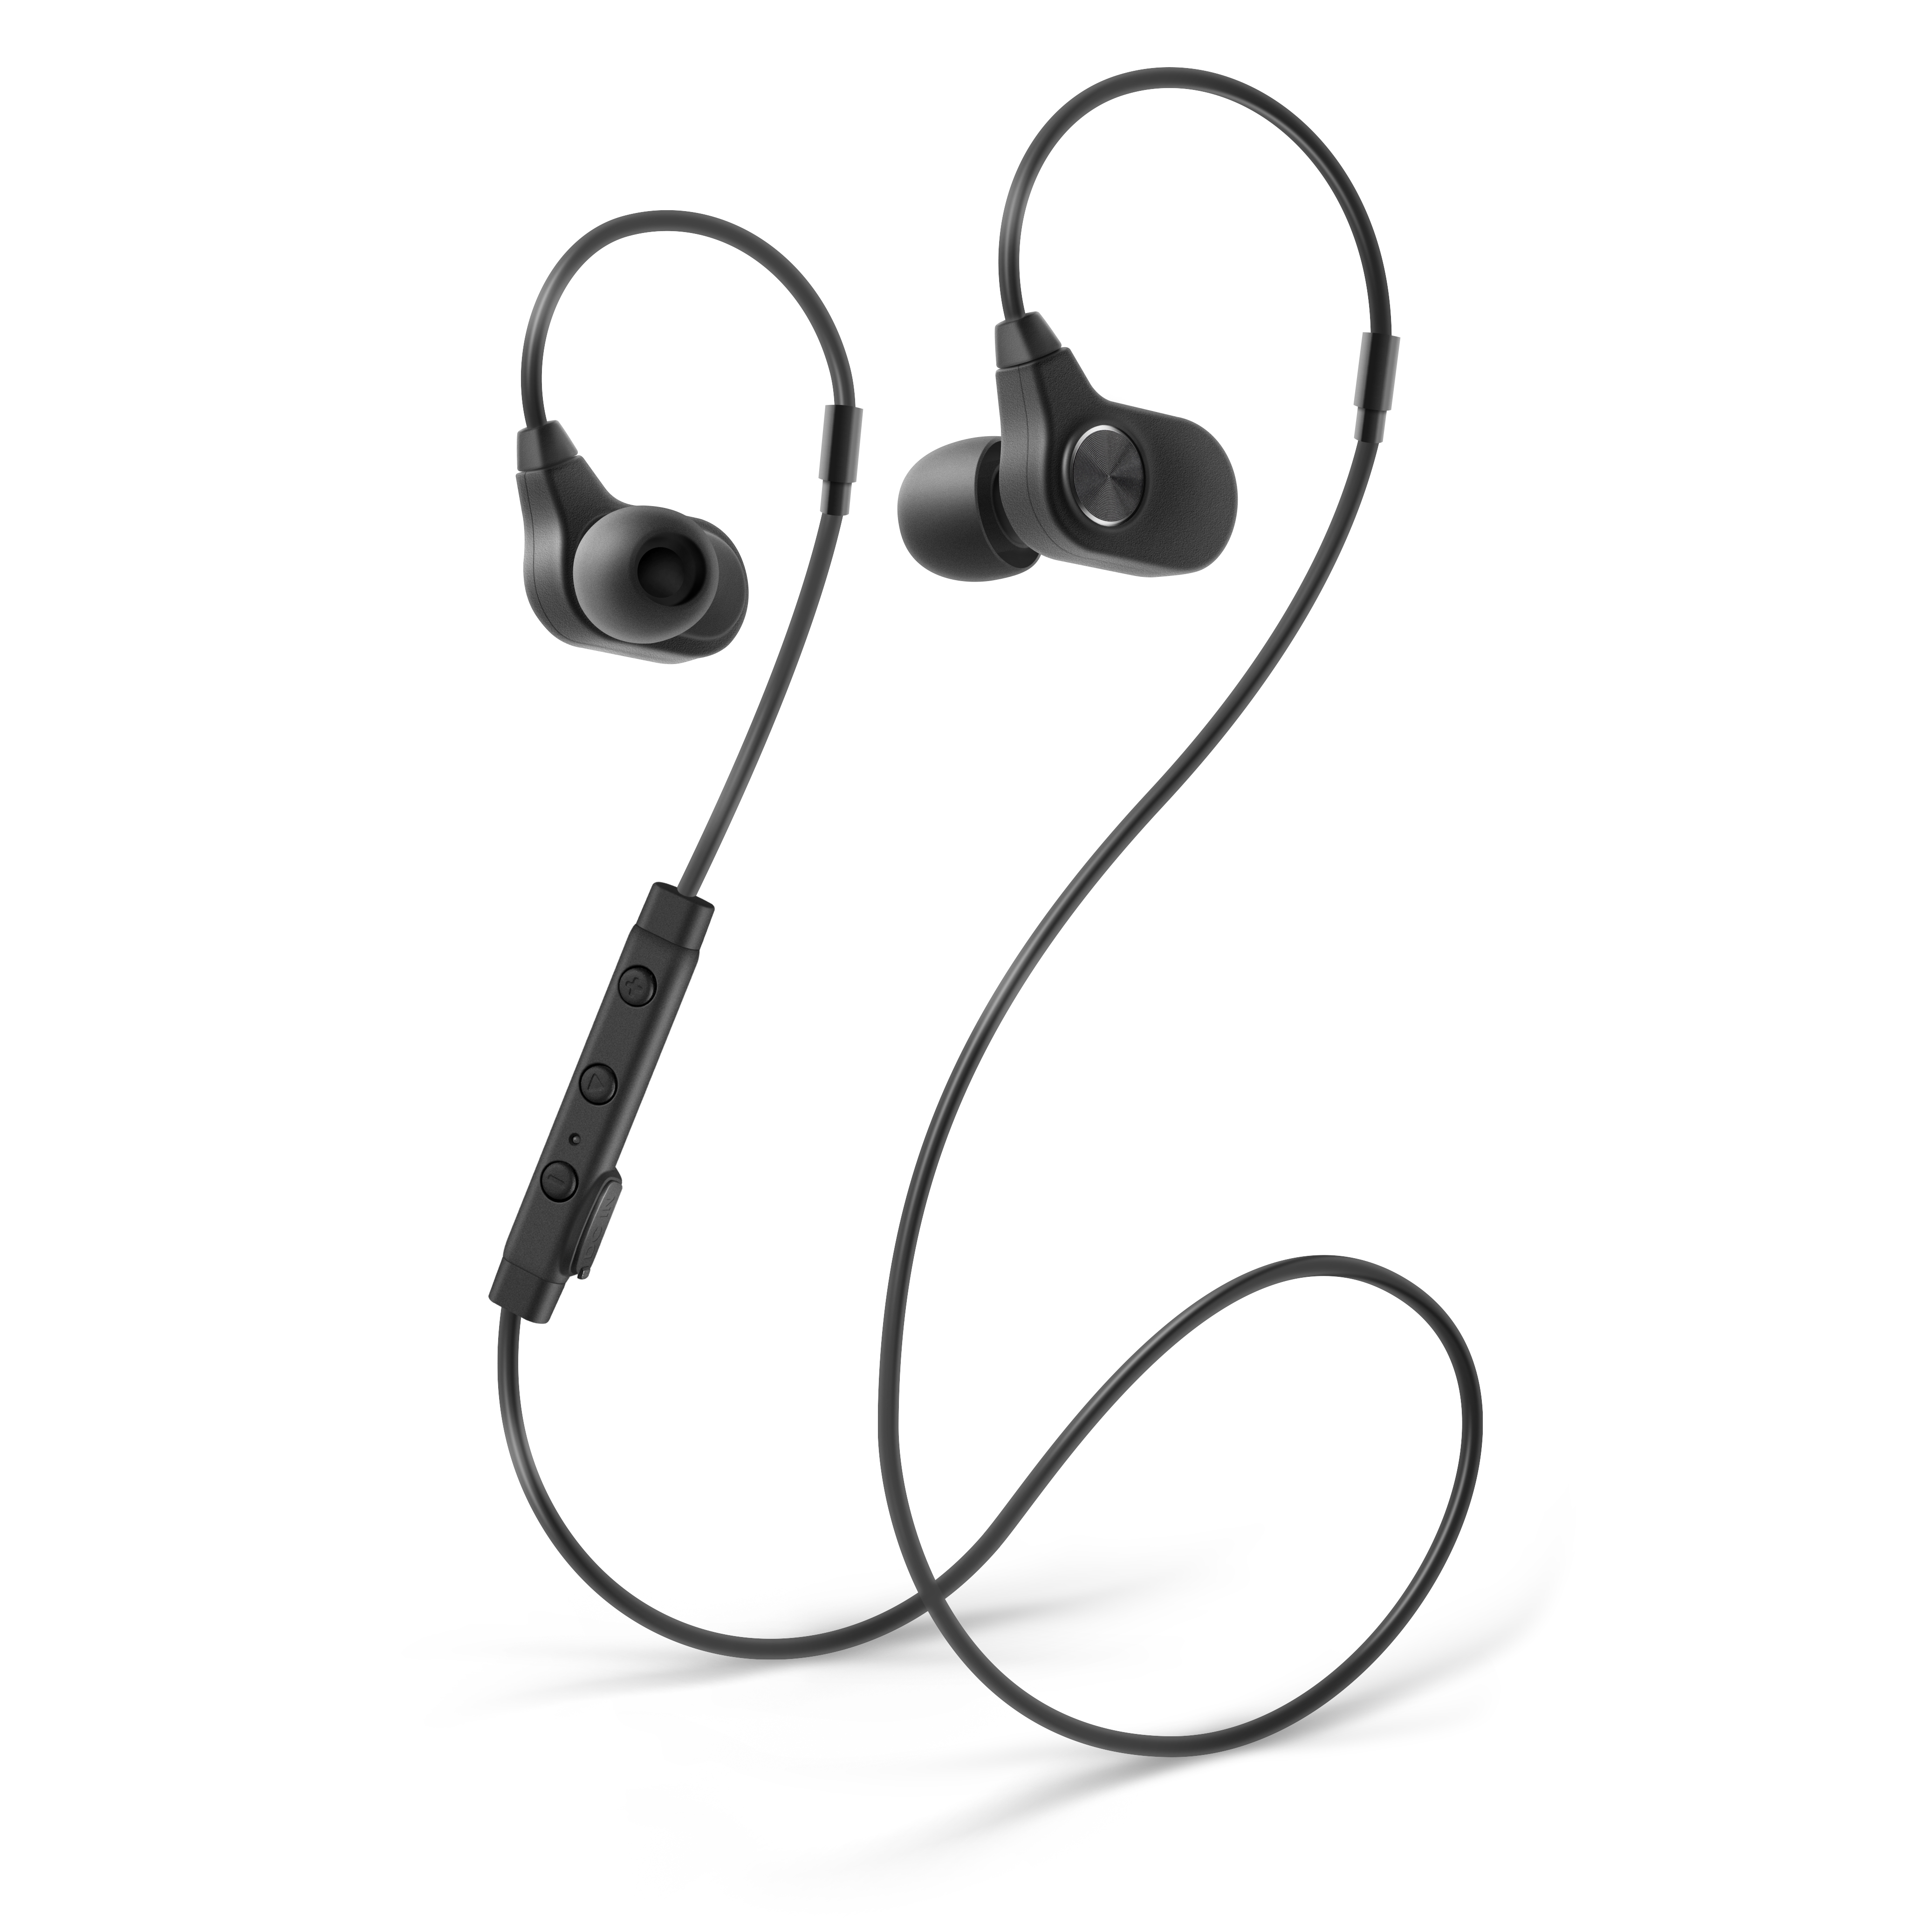 Photive G1 Bluetooth Headphones, Best Wireless Earbuds For Sports, Running  And Gym Workouts Waterproof, Sweatproof, Securefit Headset